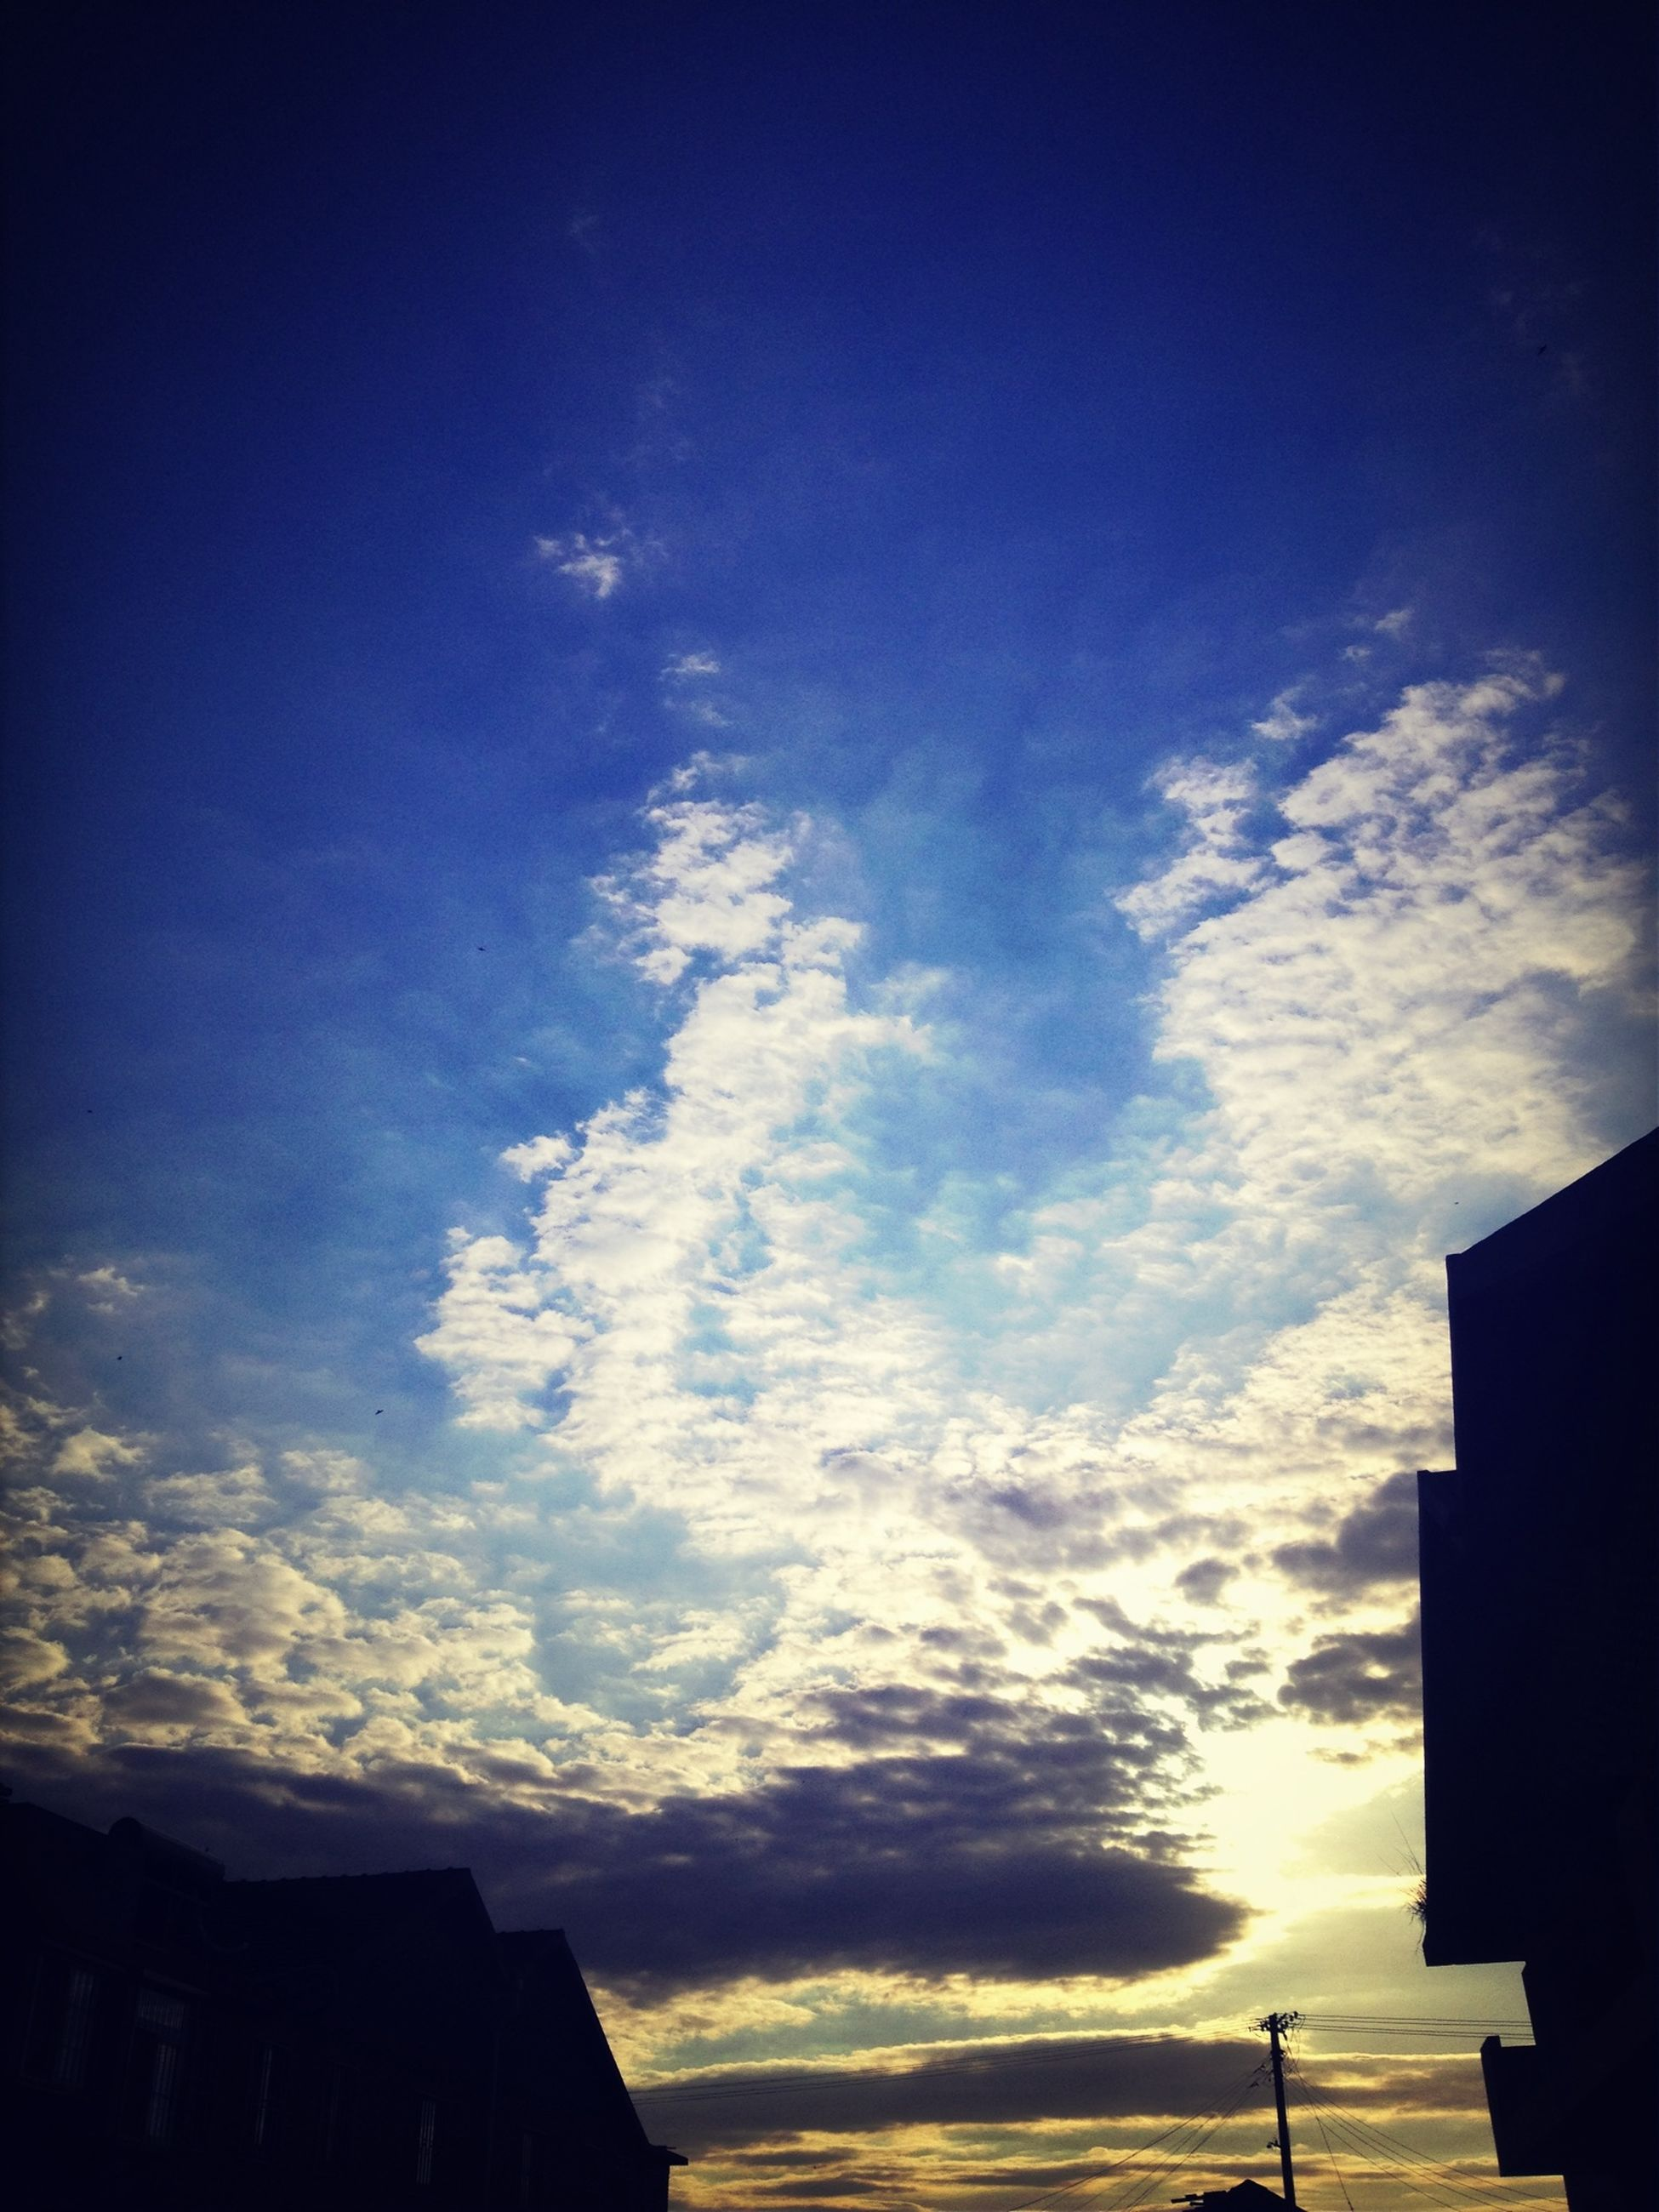 silhouette, sky, low angle view, built structure, building exterior, sunset, architecture, cloud - sky, blue, cloud, beauty in nature, nature, house, scenics, dusk, tranquility, outdoors, cloudy, no people, high section